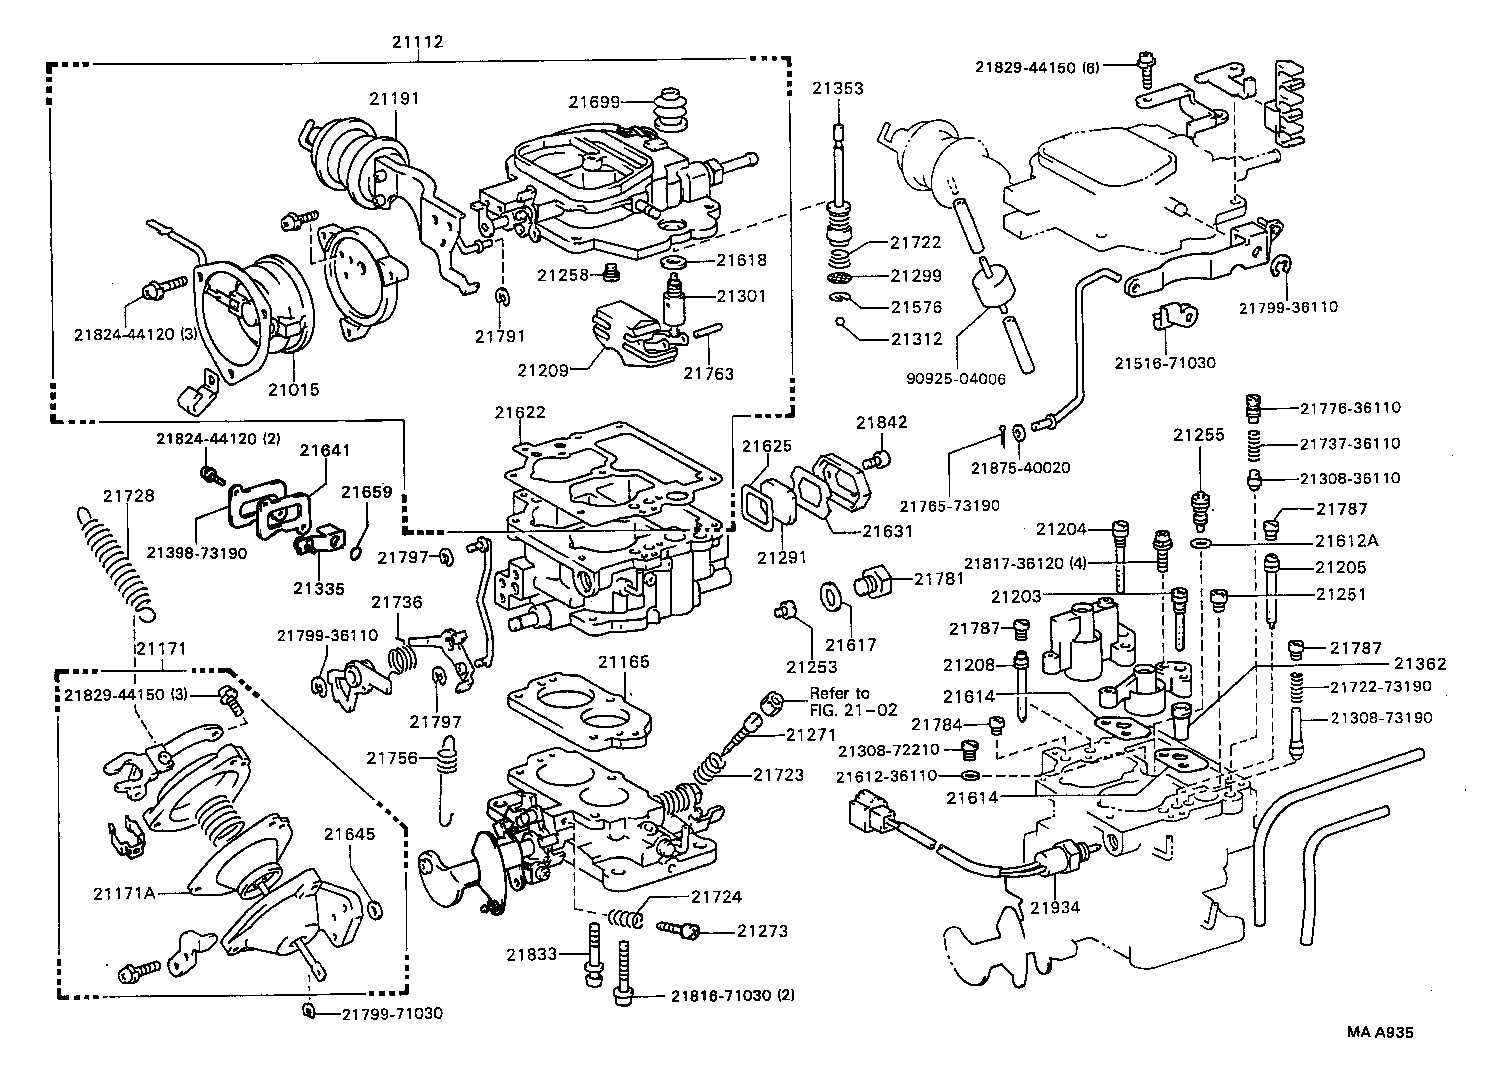 Toyota Corolla Carburetor Vacuum Diagram